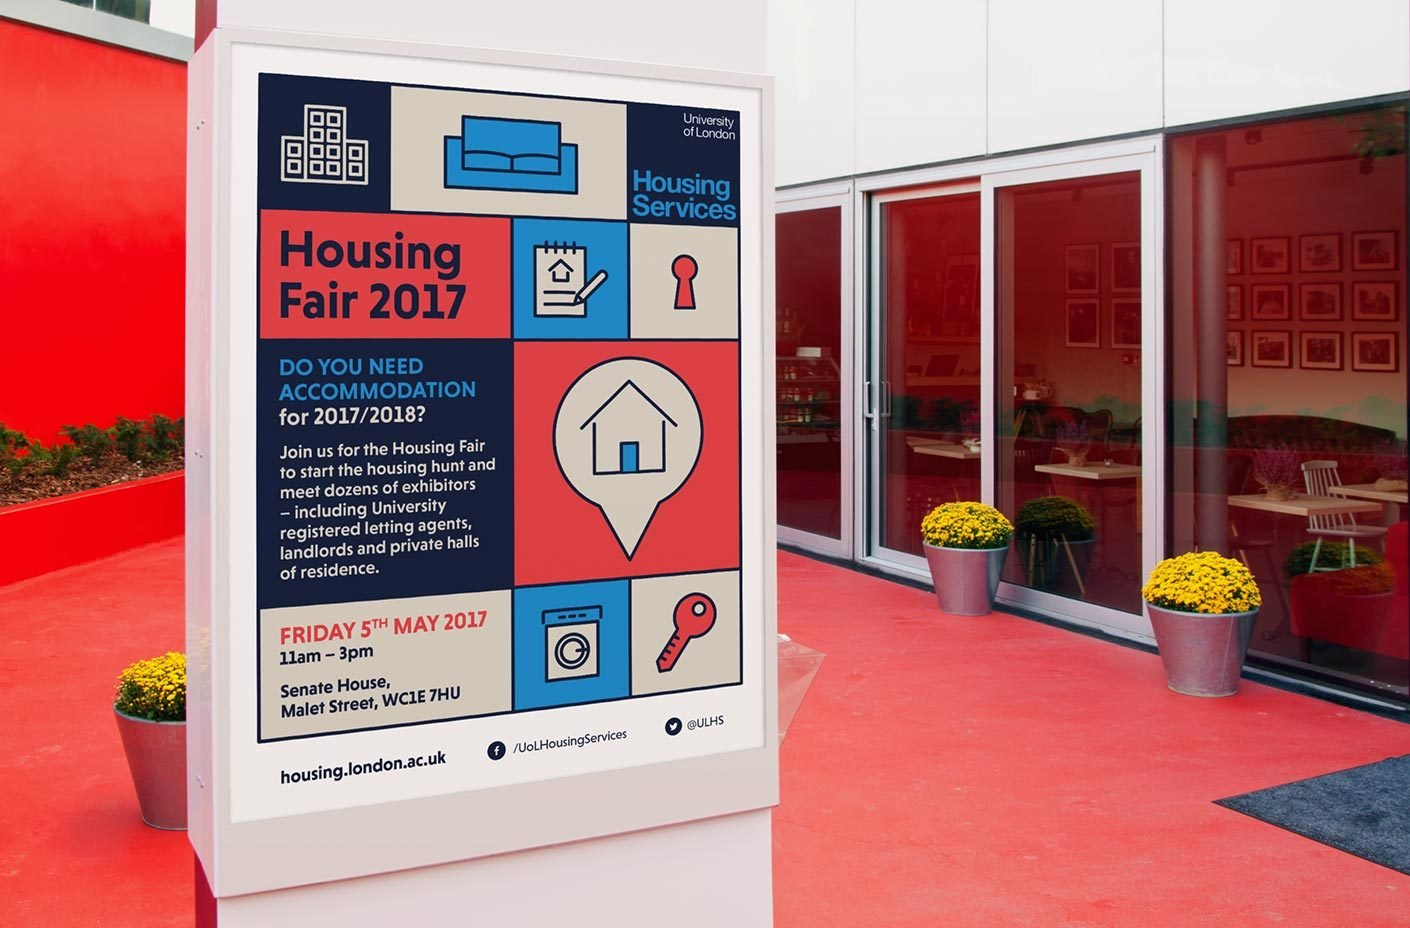 University of London Housing Fair Poster - Education marketing material